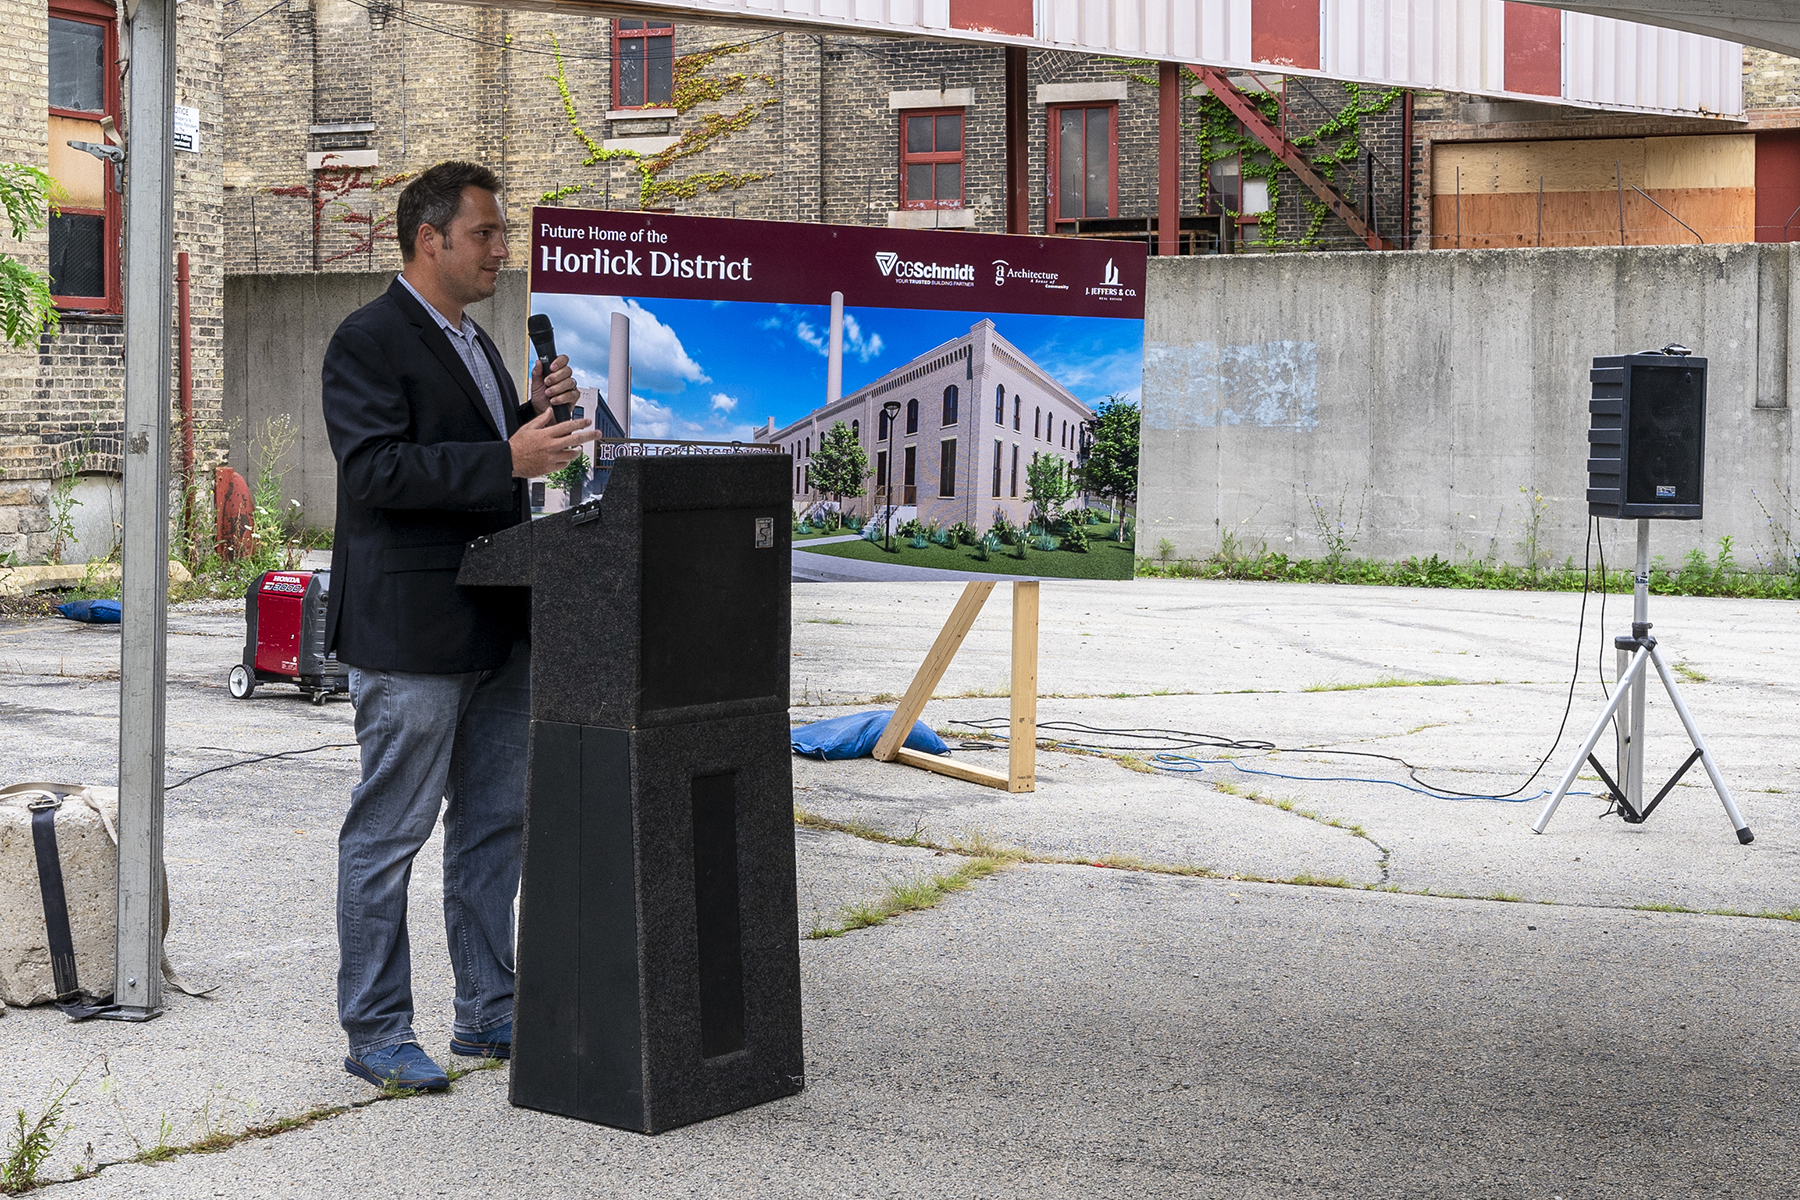 historic horlick malted milk groundbreaking ceremony